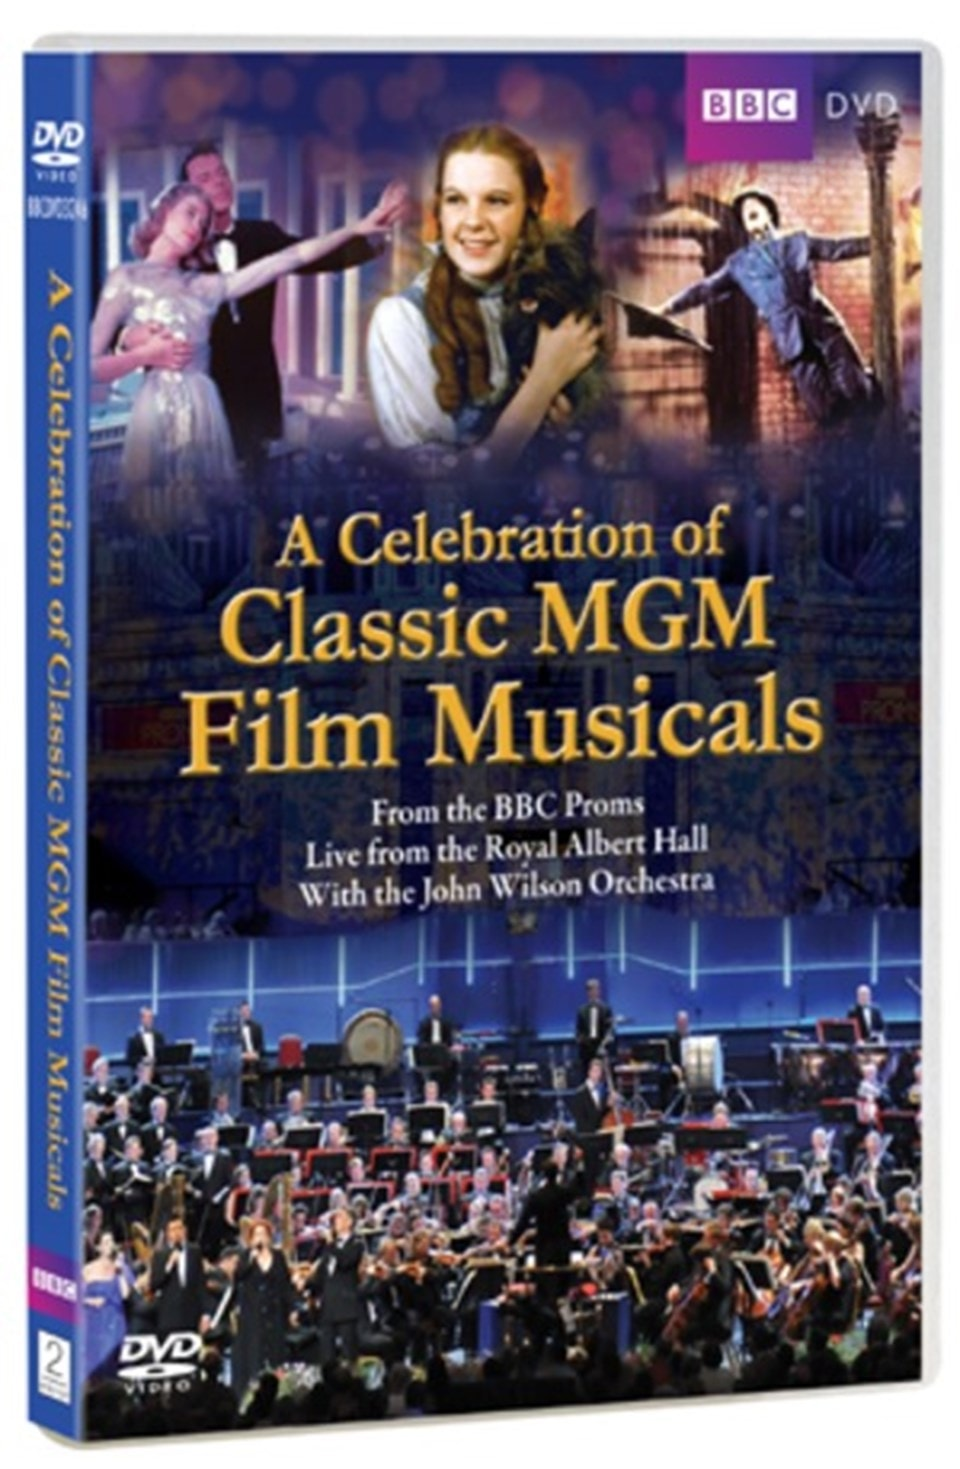 A Celebration of Classic MGM Film Musicals - 1